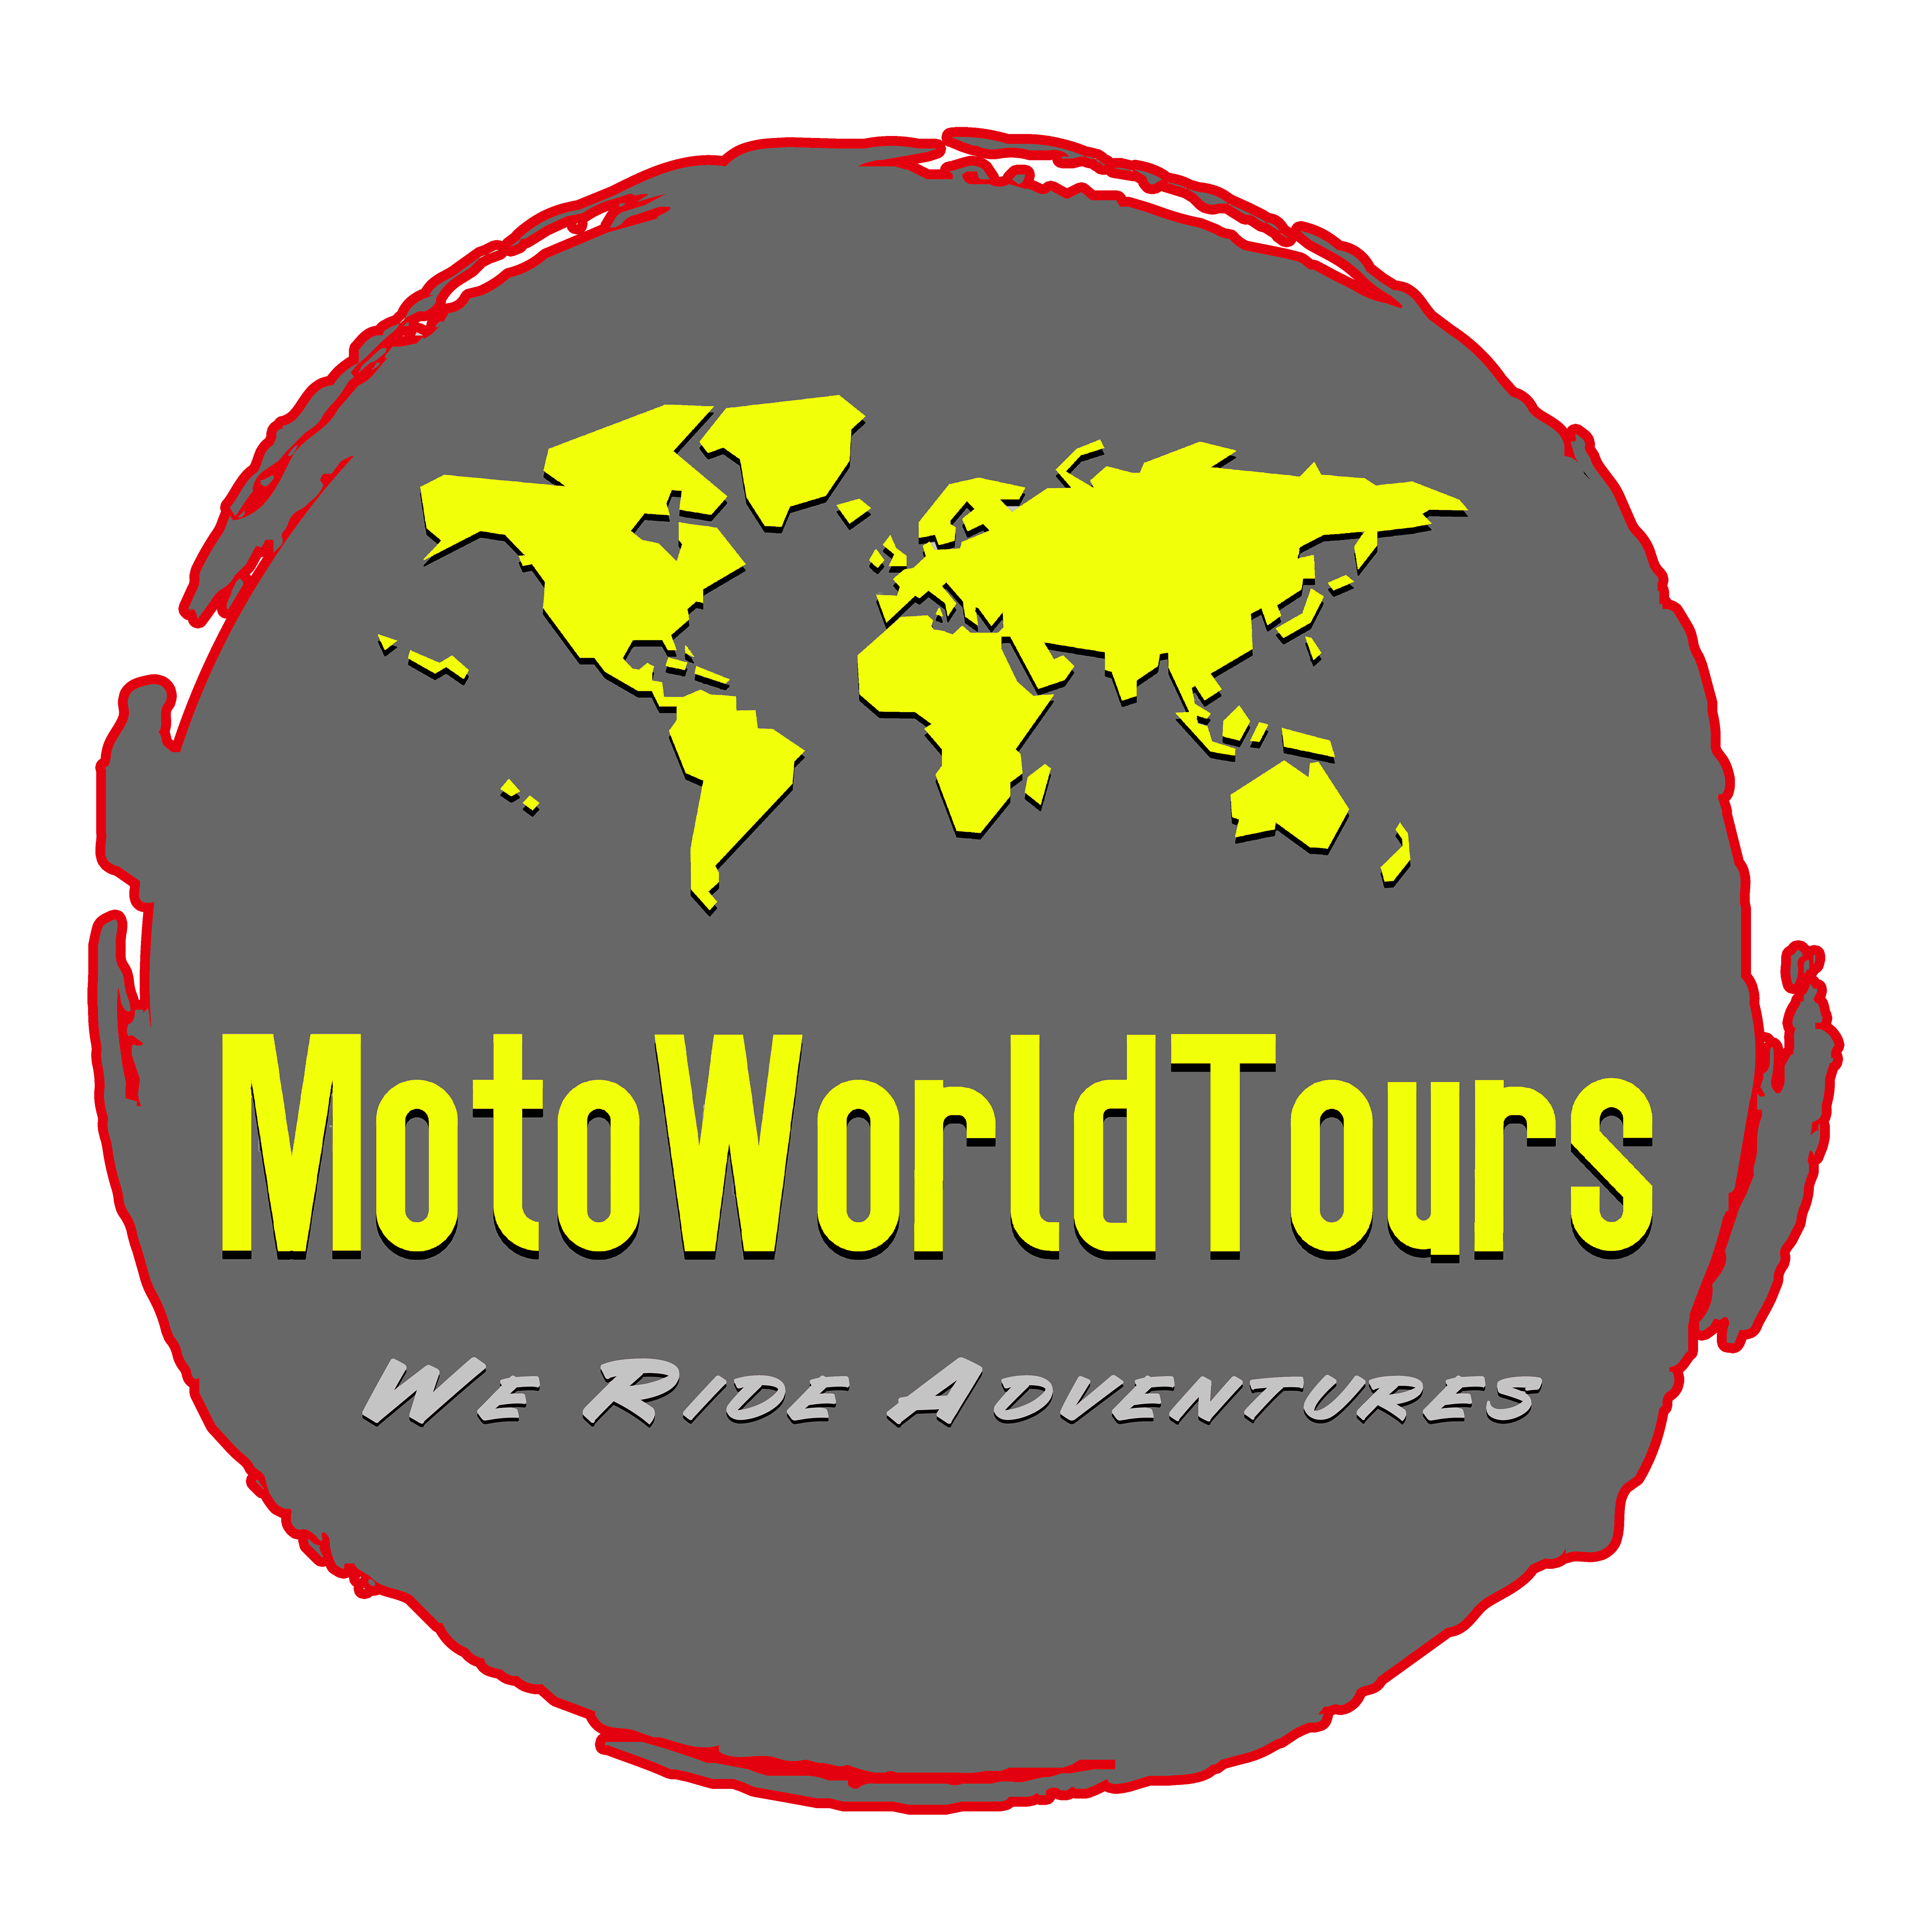 Moto World Tours Online Shop